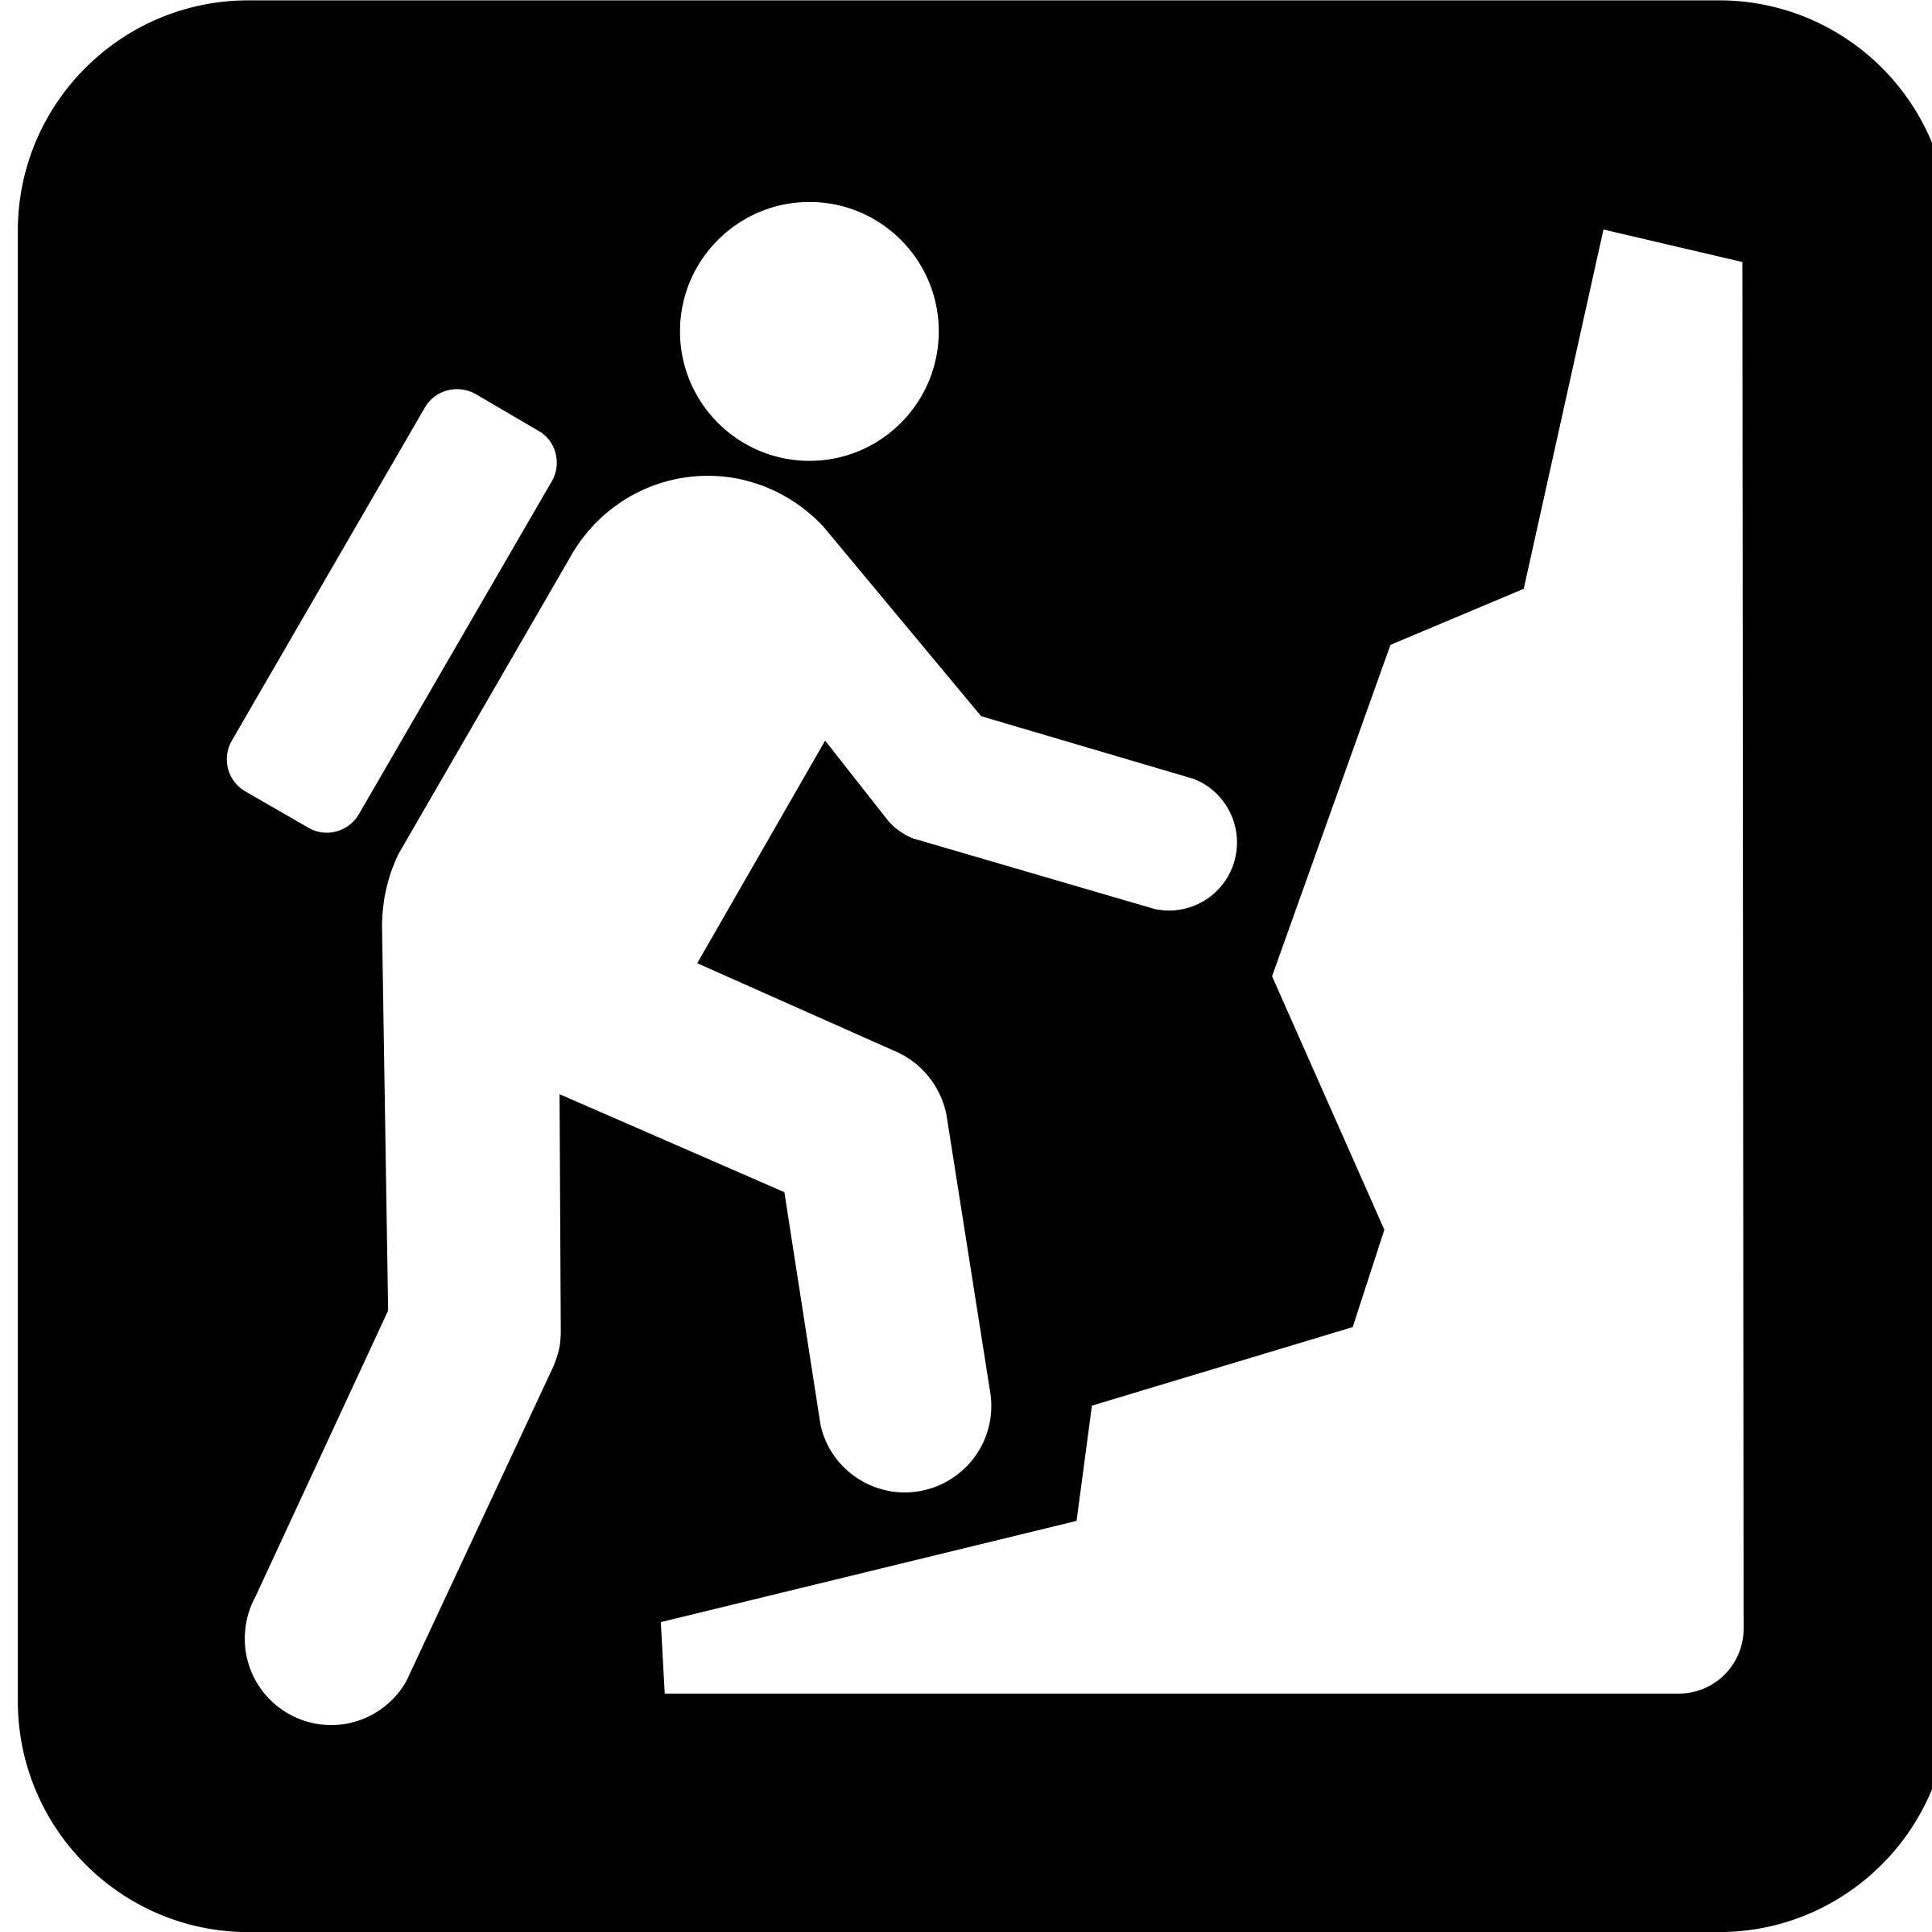 Climbing Mountaineering Clip art.